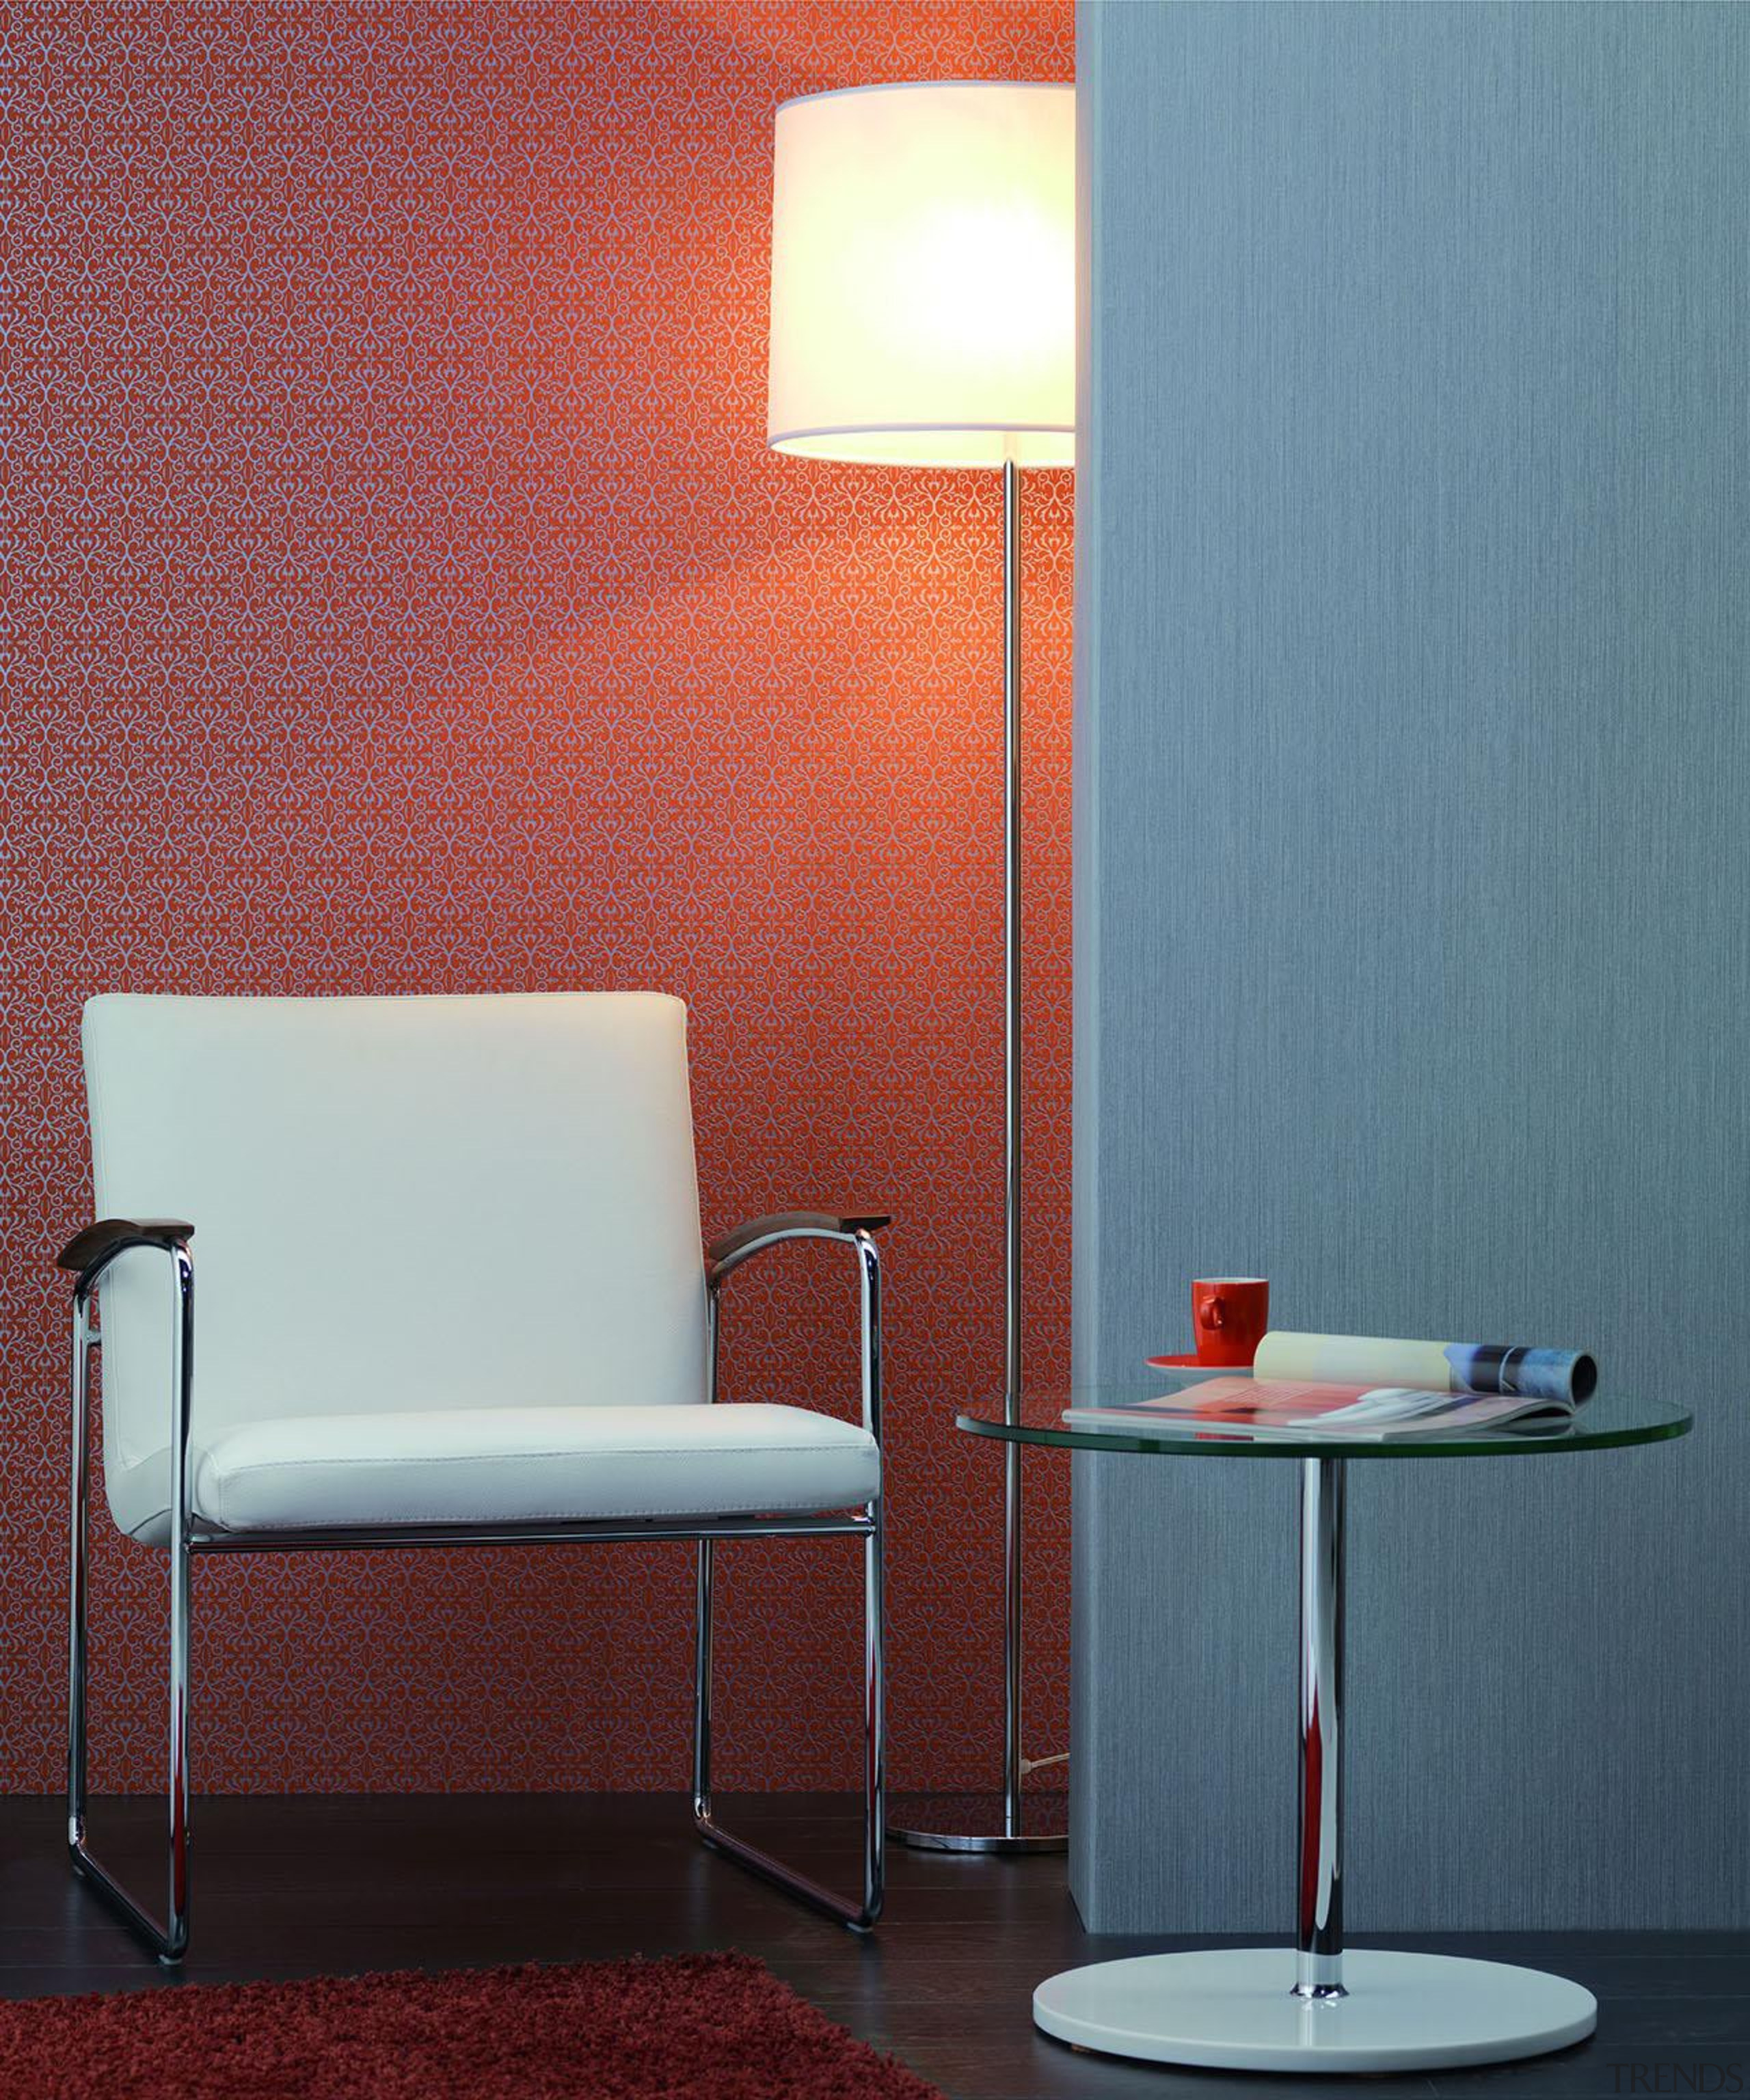 Modern Style Range - ceiling   chair   ceiling, chair, floor, flooring, furniture, interior design, lamp, lampshade, light, light fixture, lighting, lighting accessory, orange, product design, table, wall, red, teal